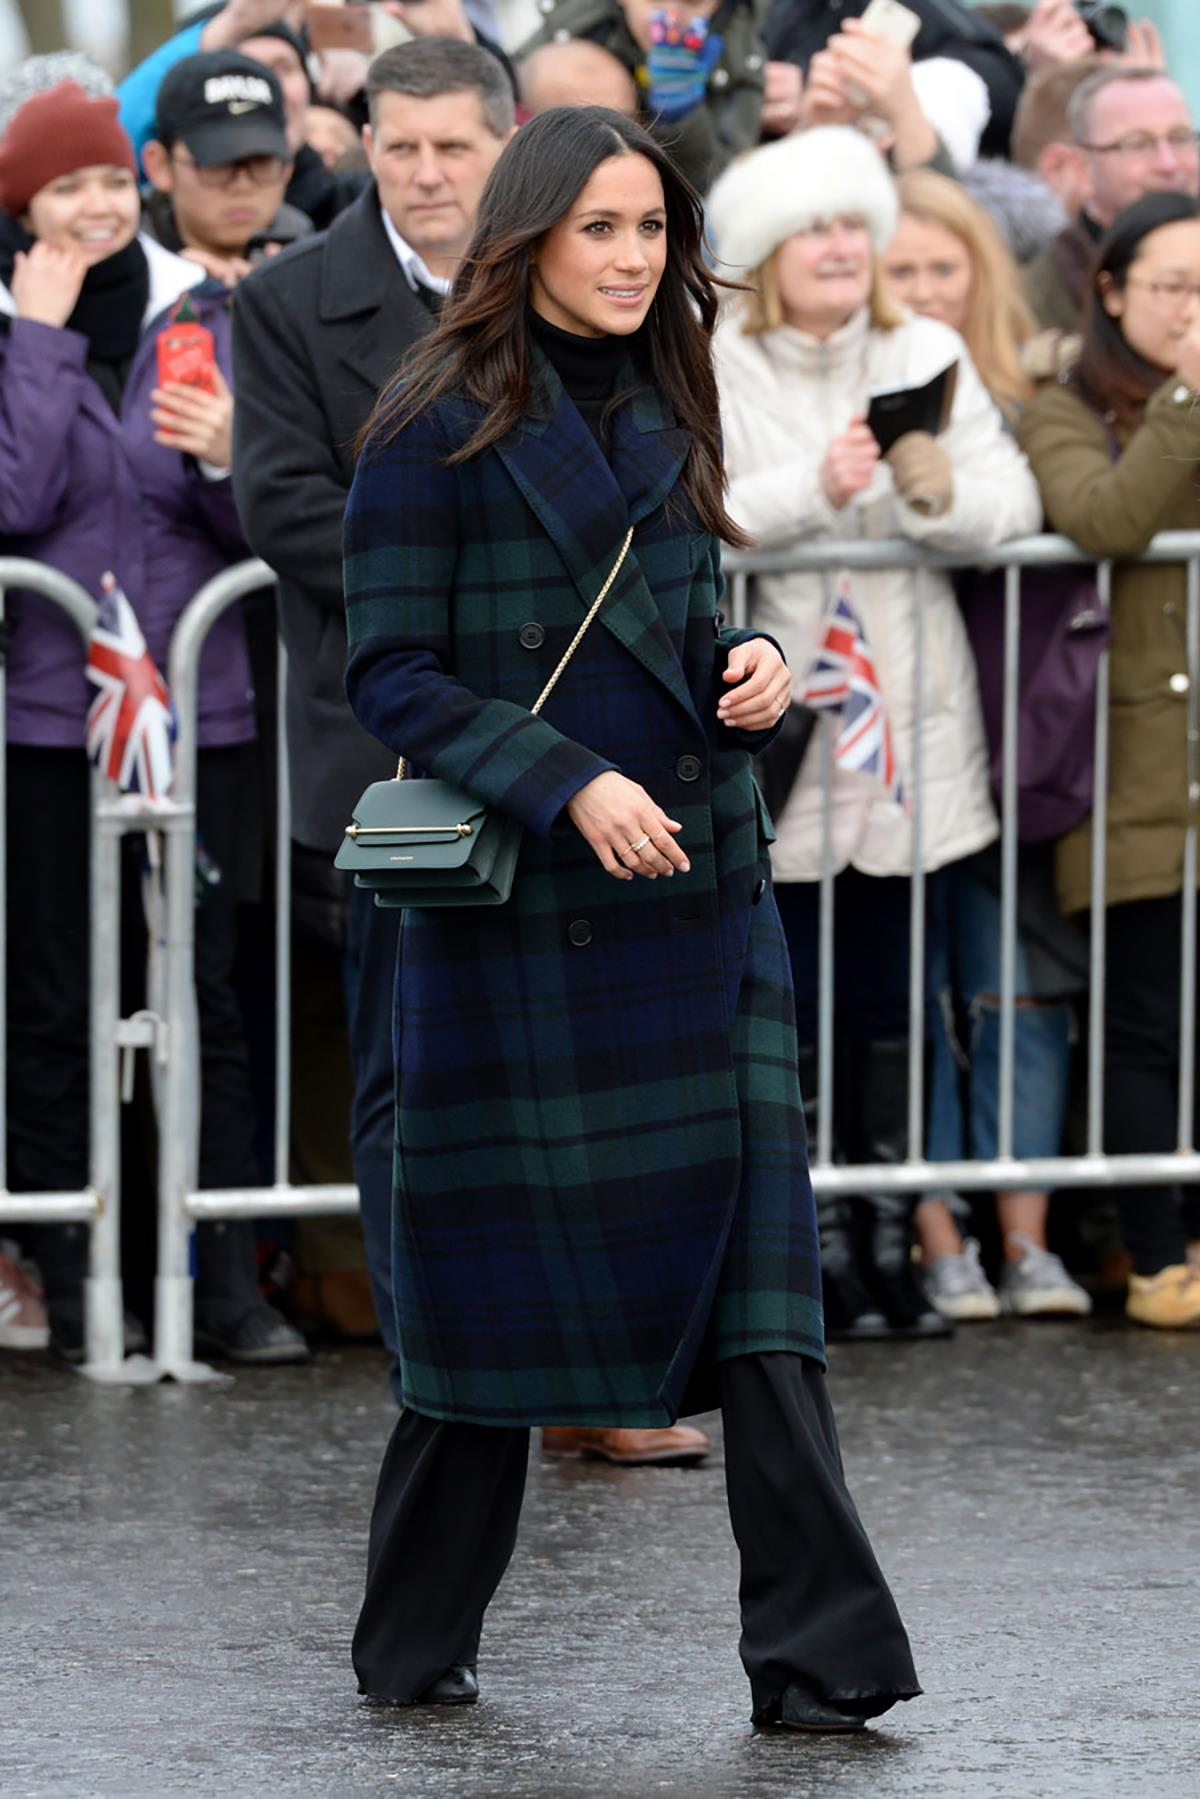 mejores-looks-meghan-markle-2018-12. Bolso 'Made in Spain'